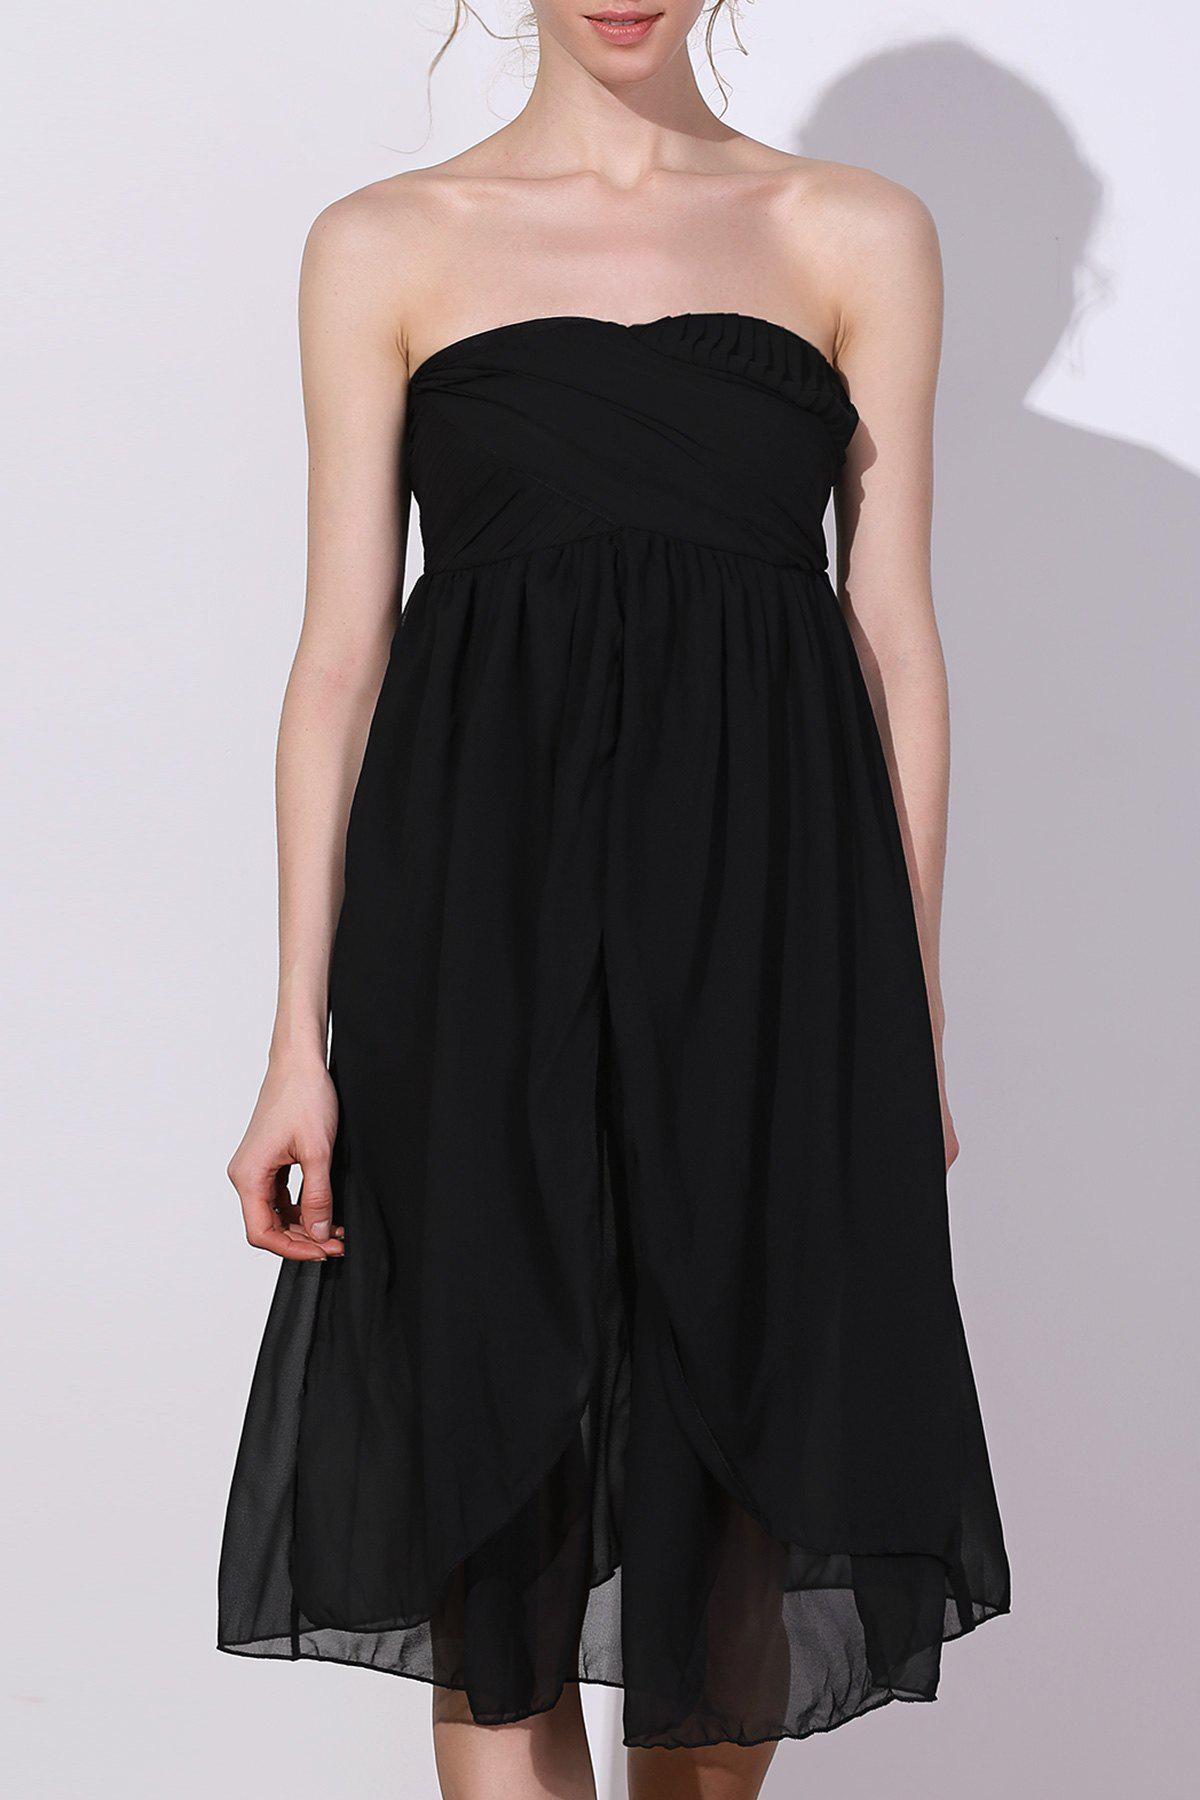 Charming Women's Strapless Solid Color Ruched Dress - BLACK S